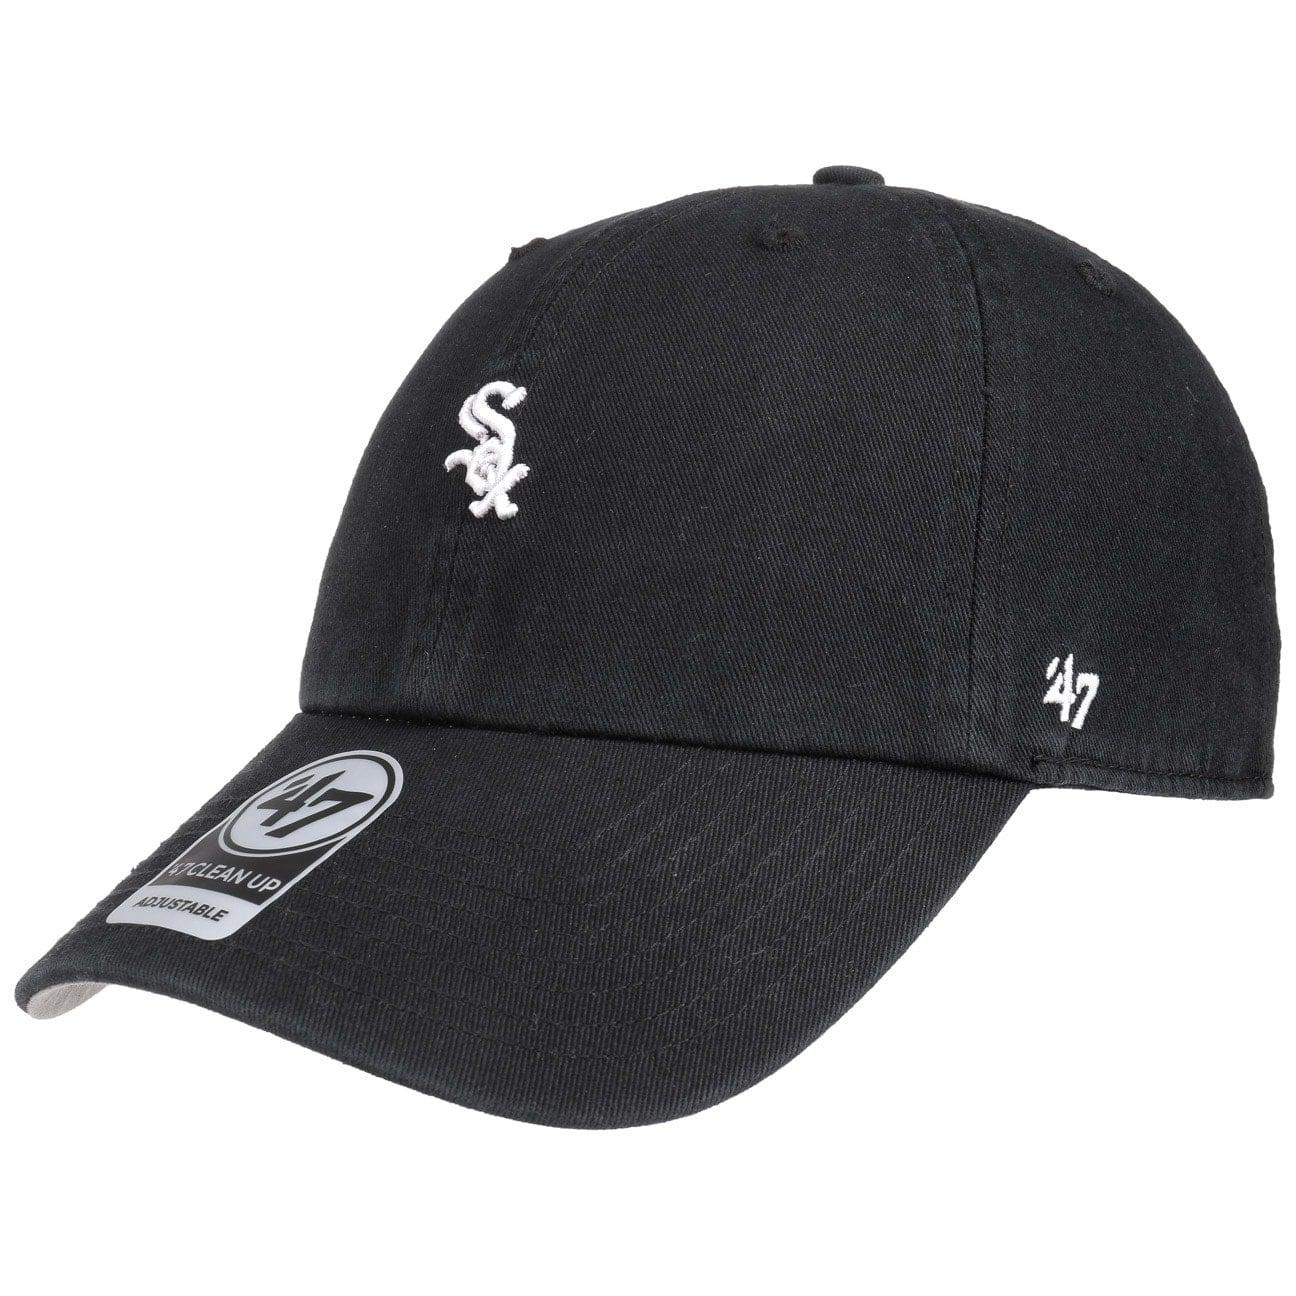 Gorra Abate White Sox by 47 Brand